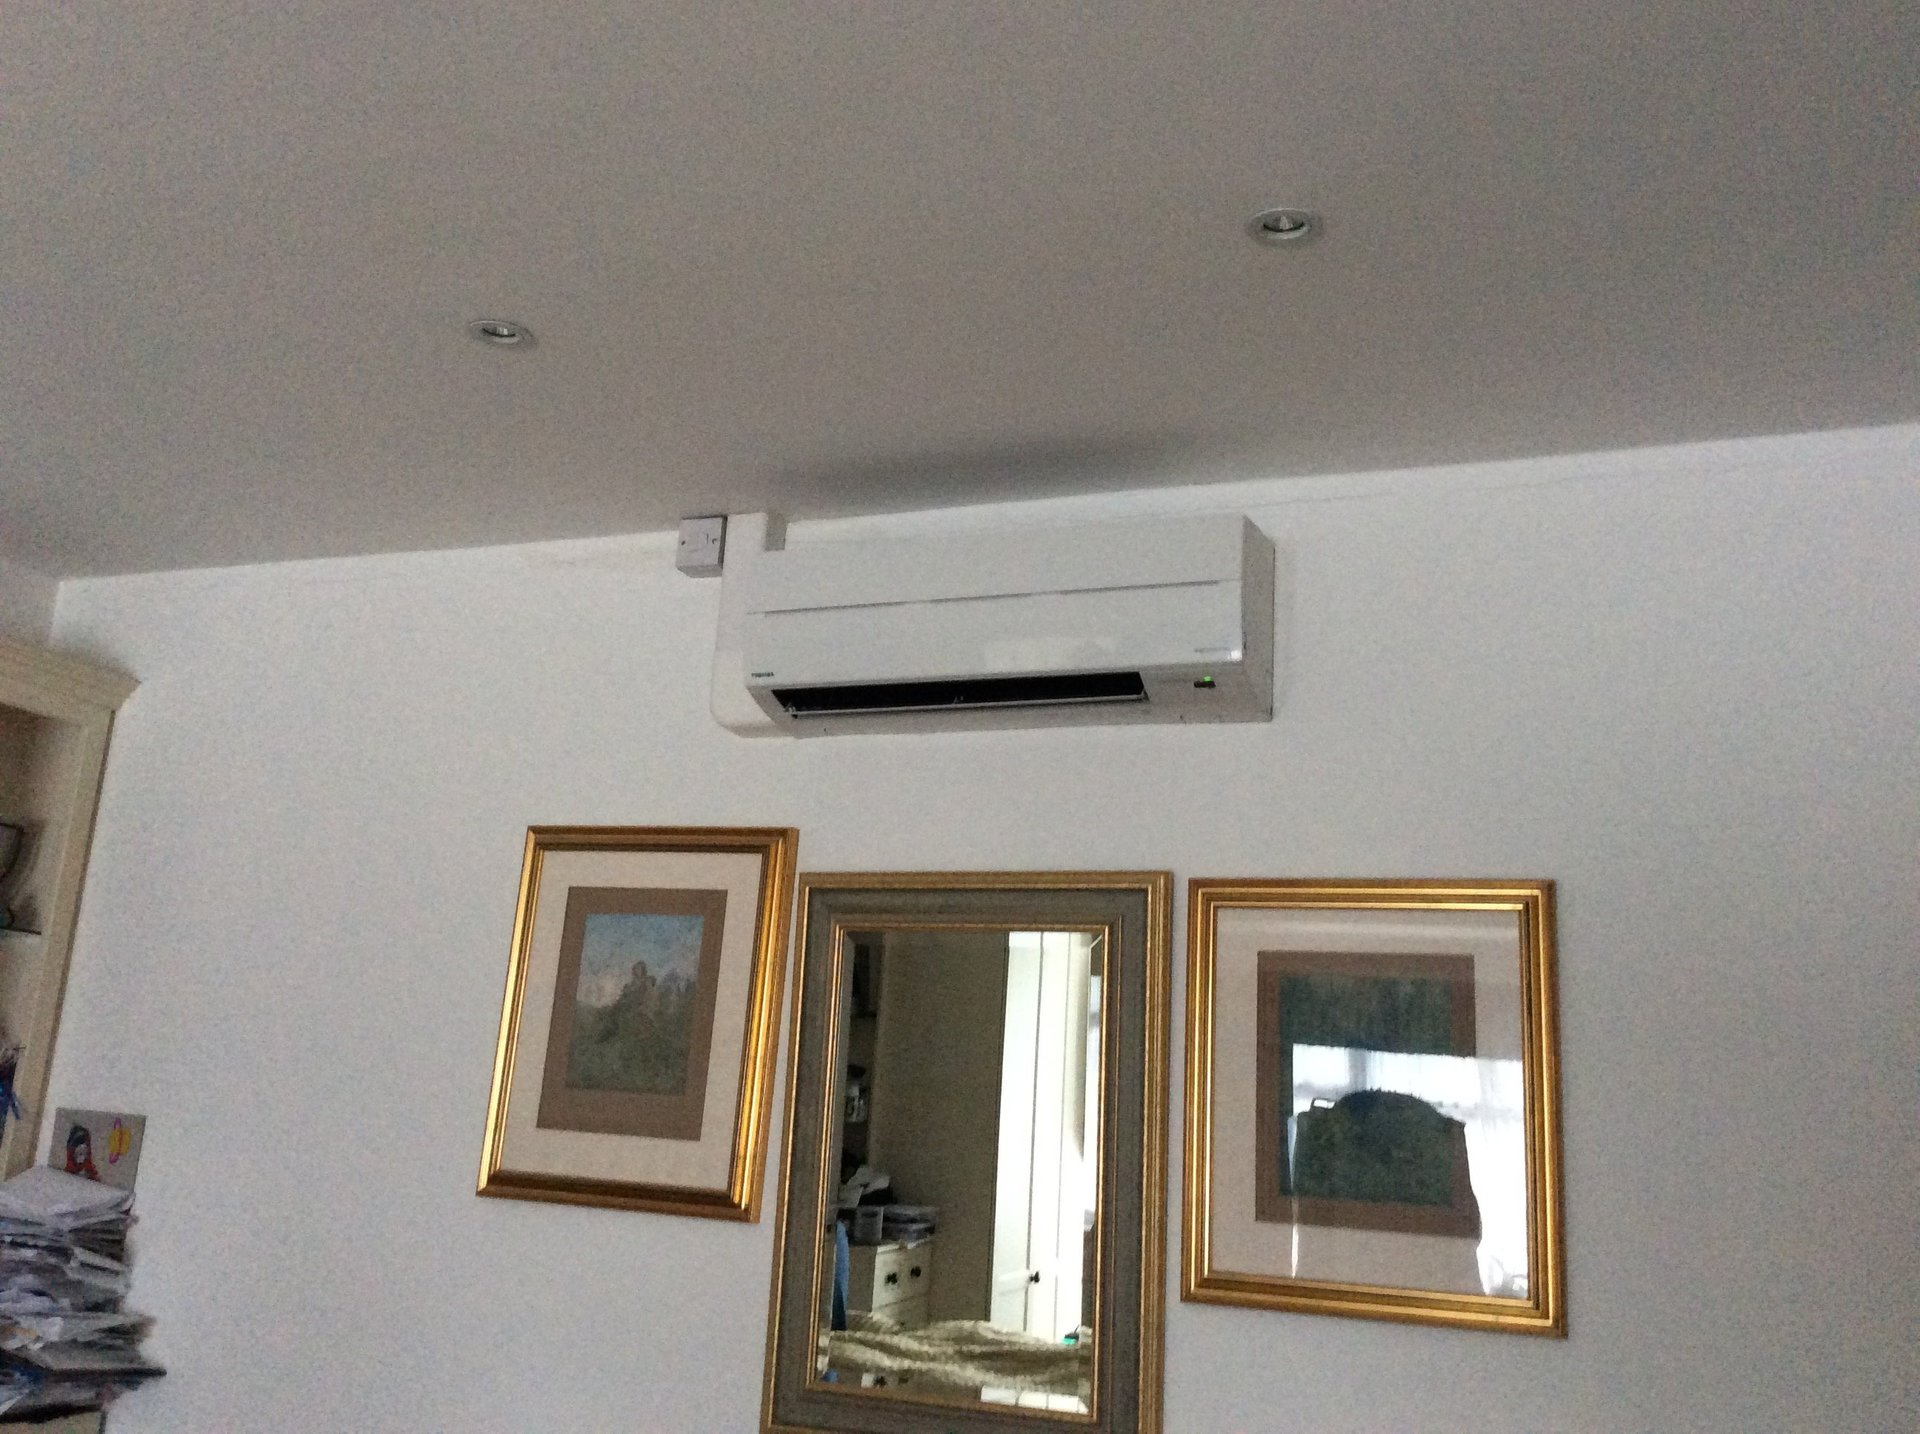 ac above the doors and windows